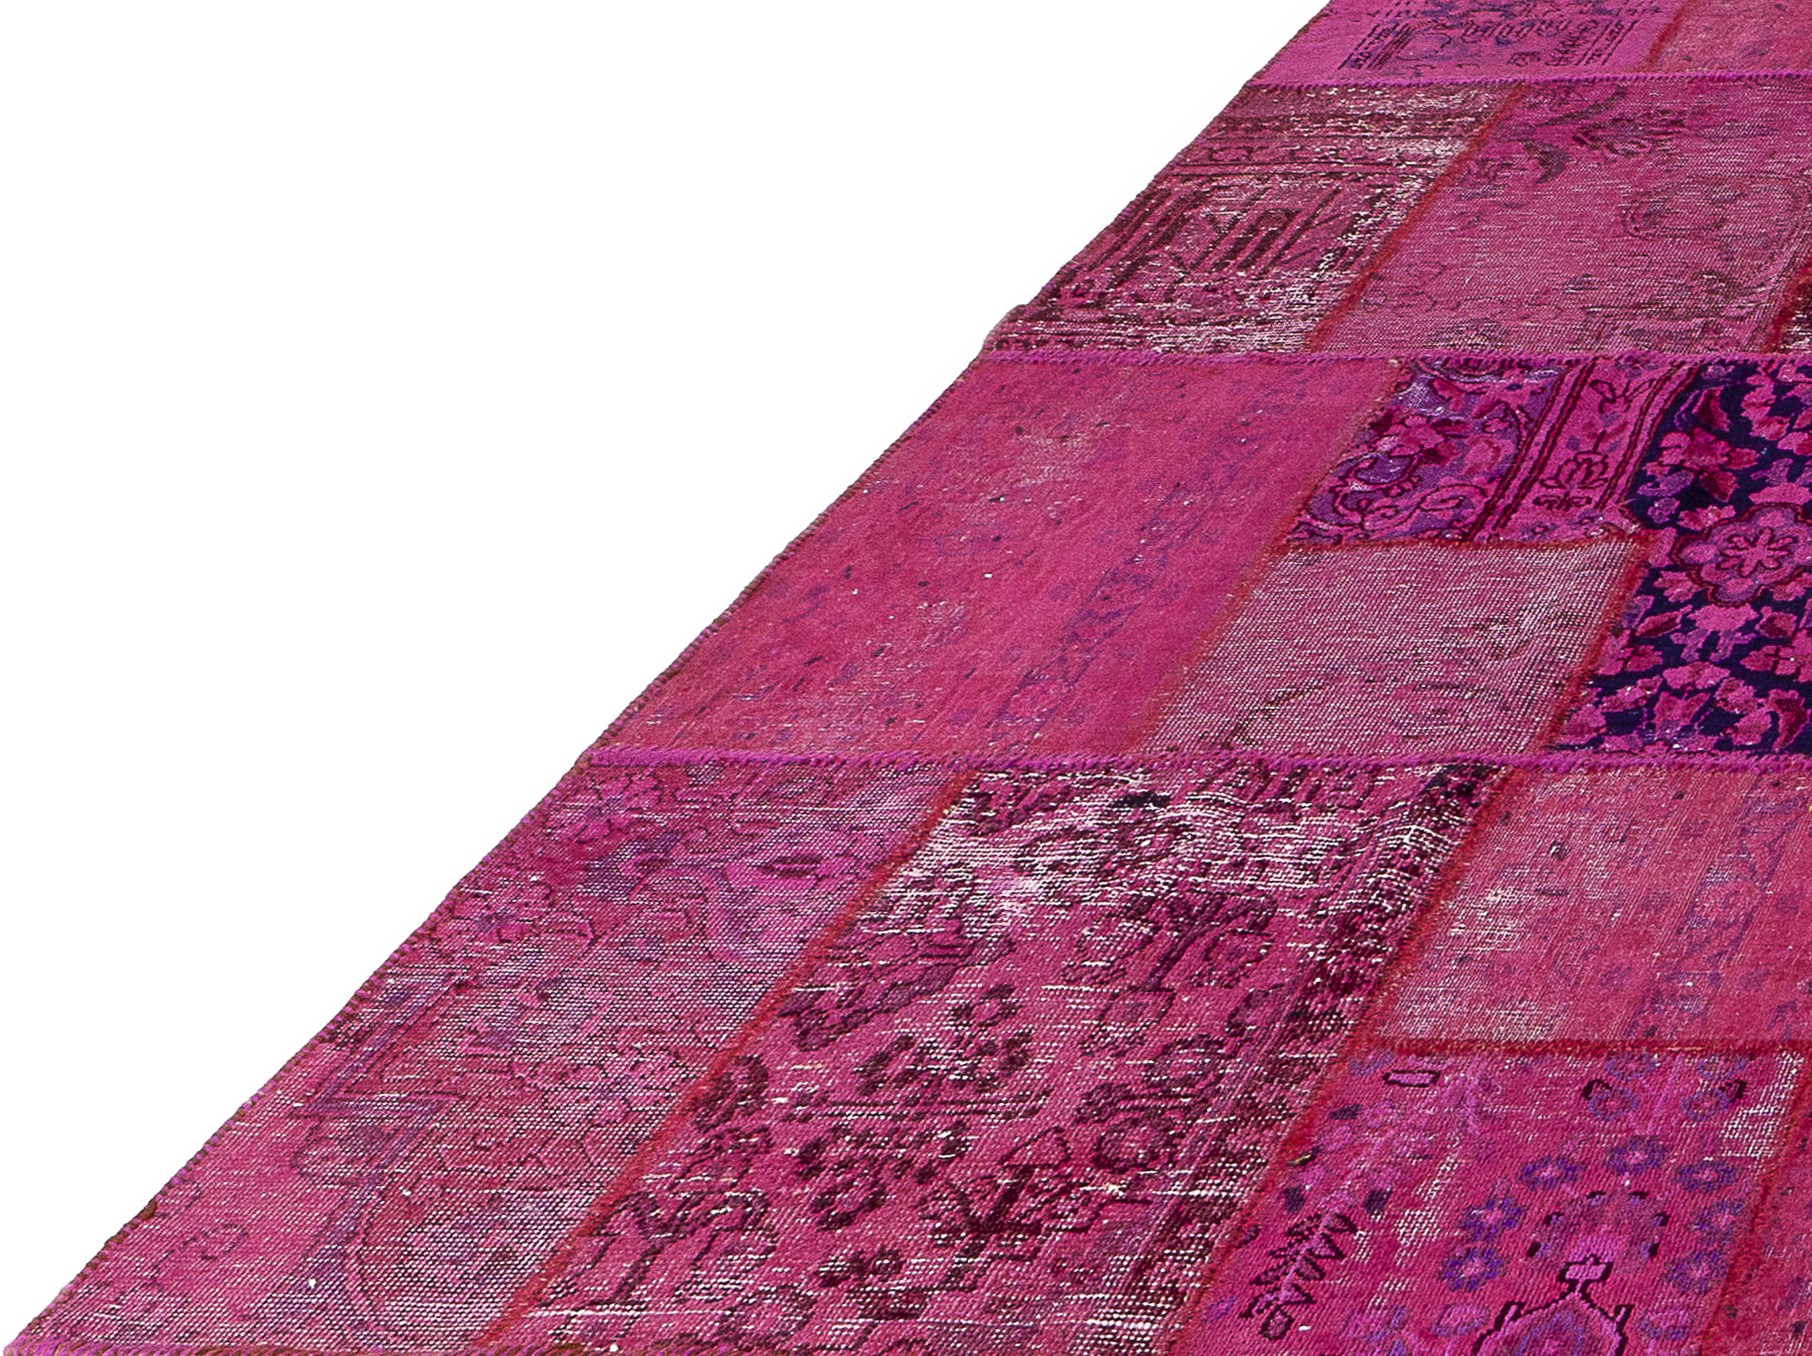 Teppich Novel Vintage Vintage Pink Carpet Patchwork By Ebru